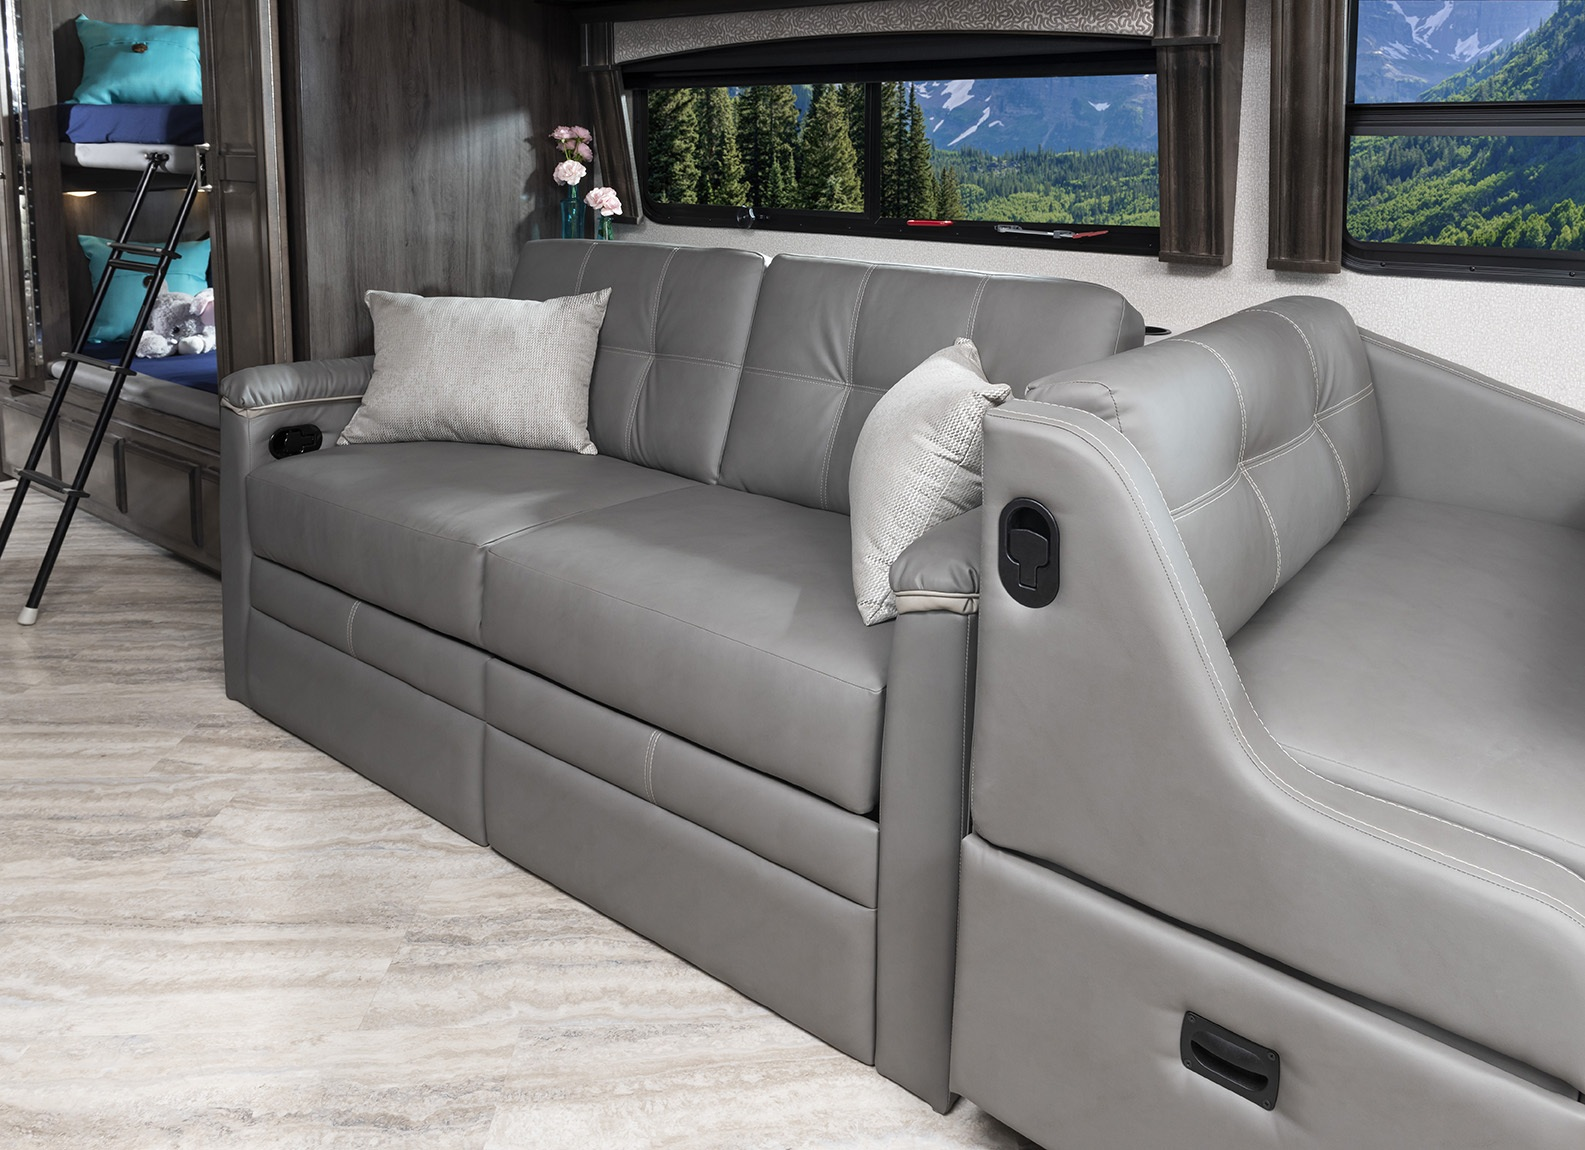 10 sofa SW37 F parch Grey6802in MY19